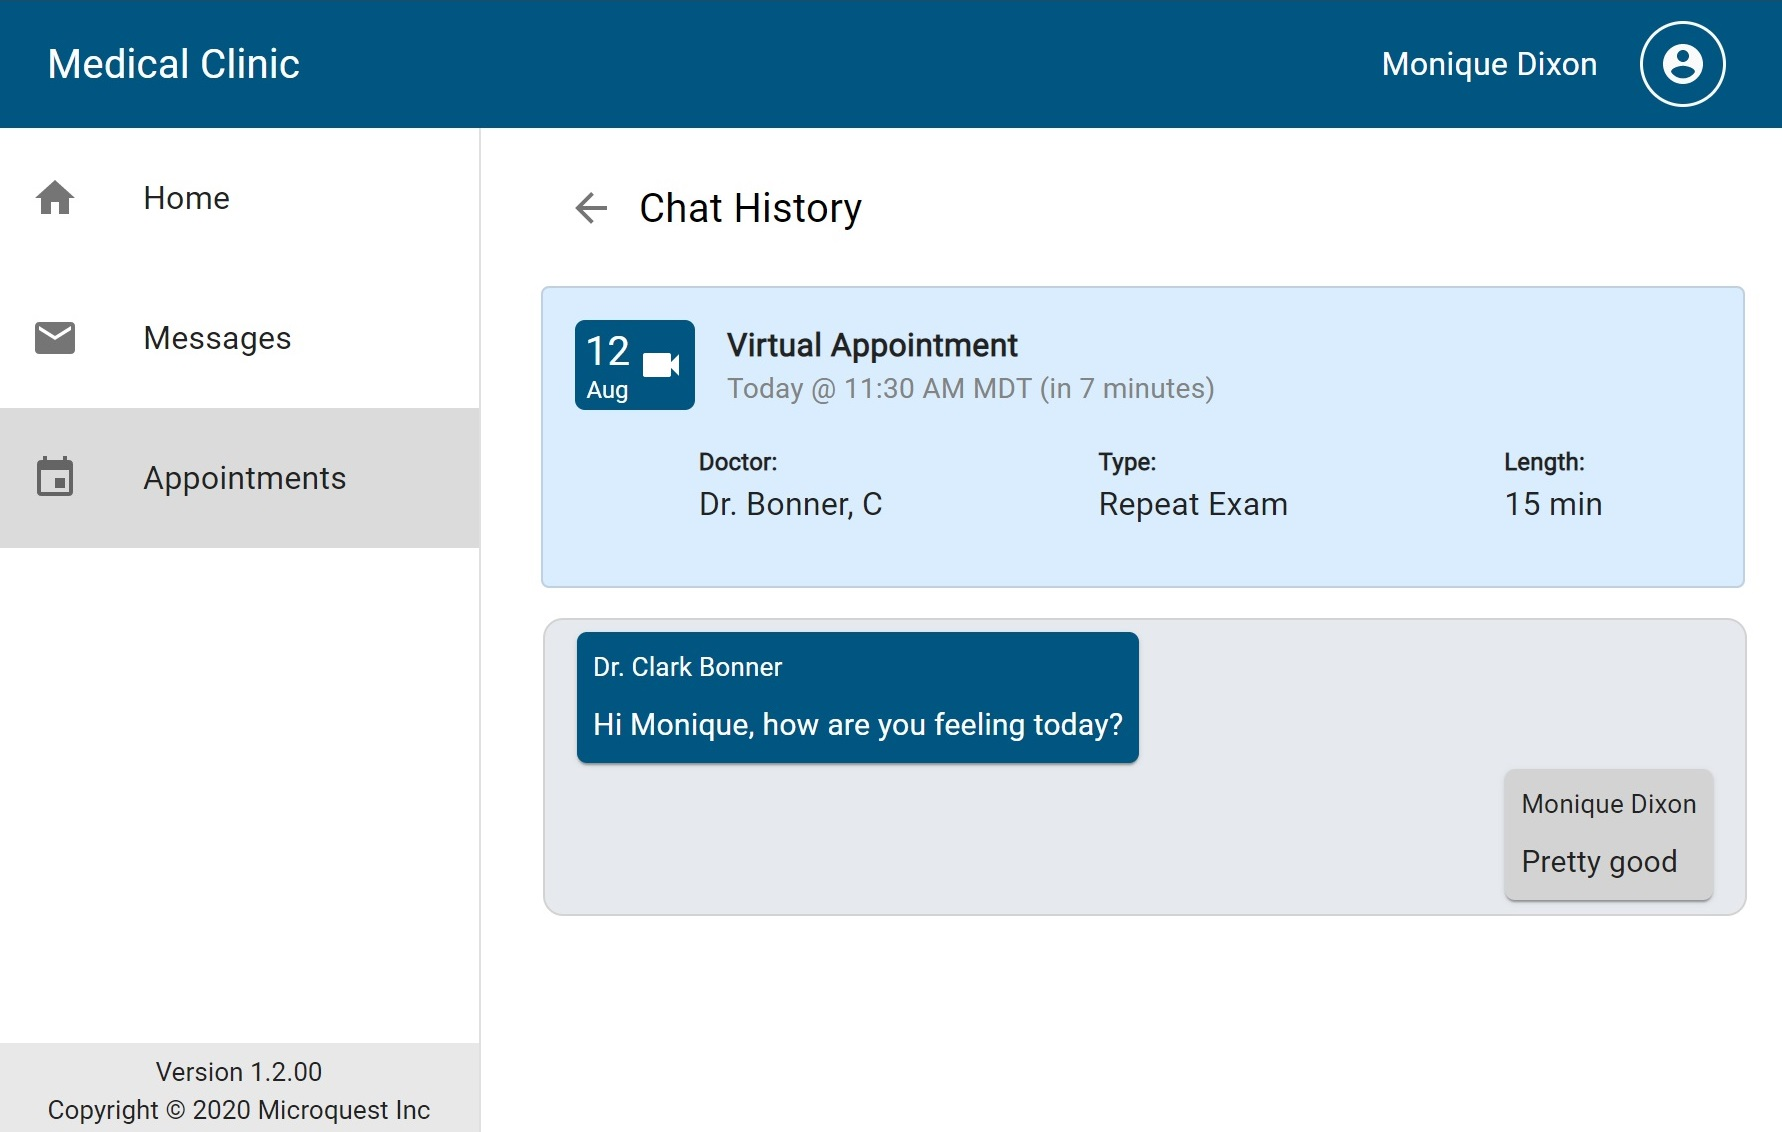 Past appointments with chat visible